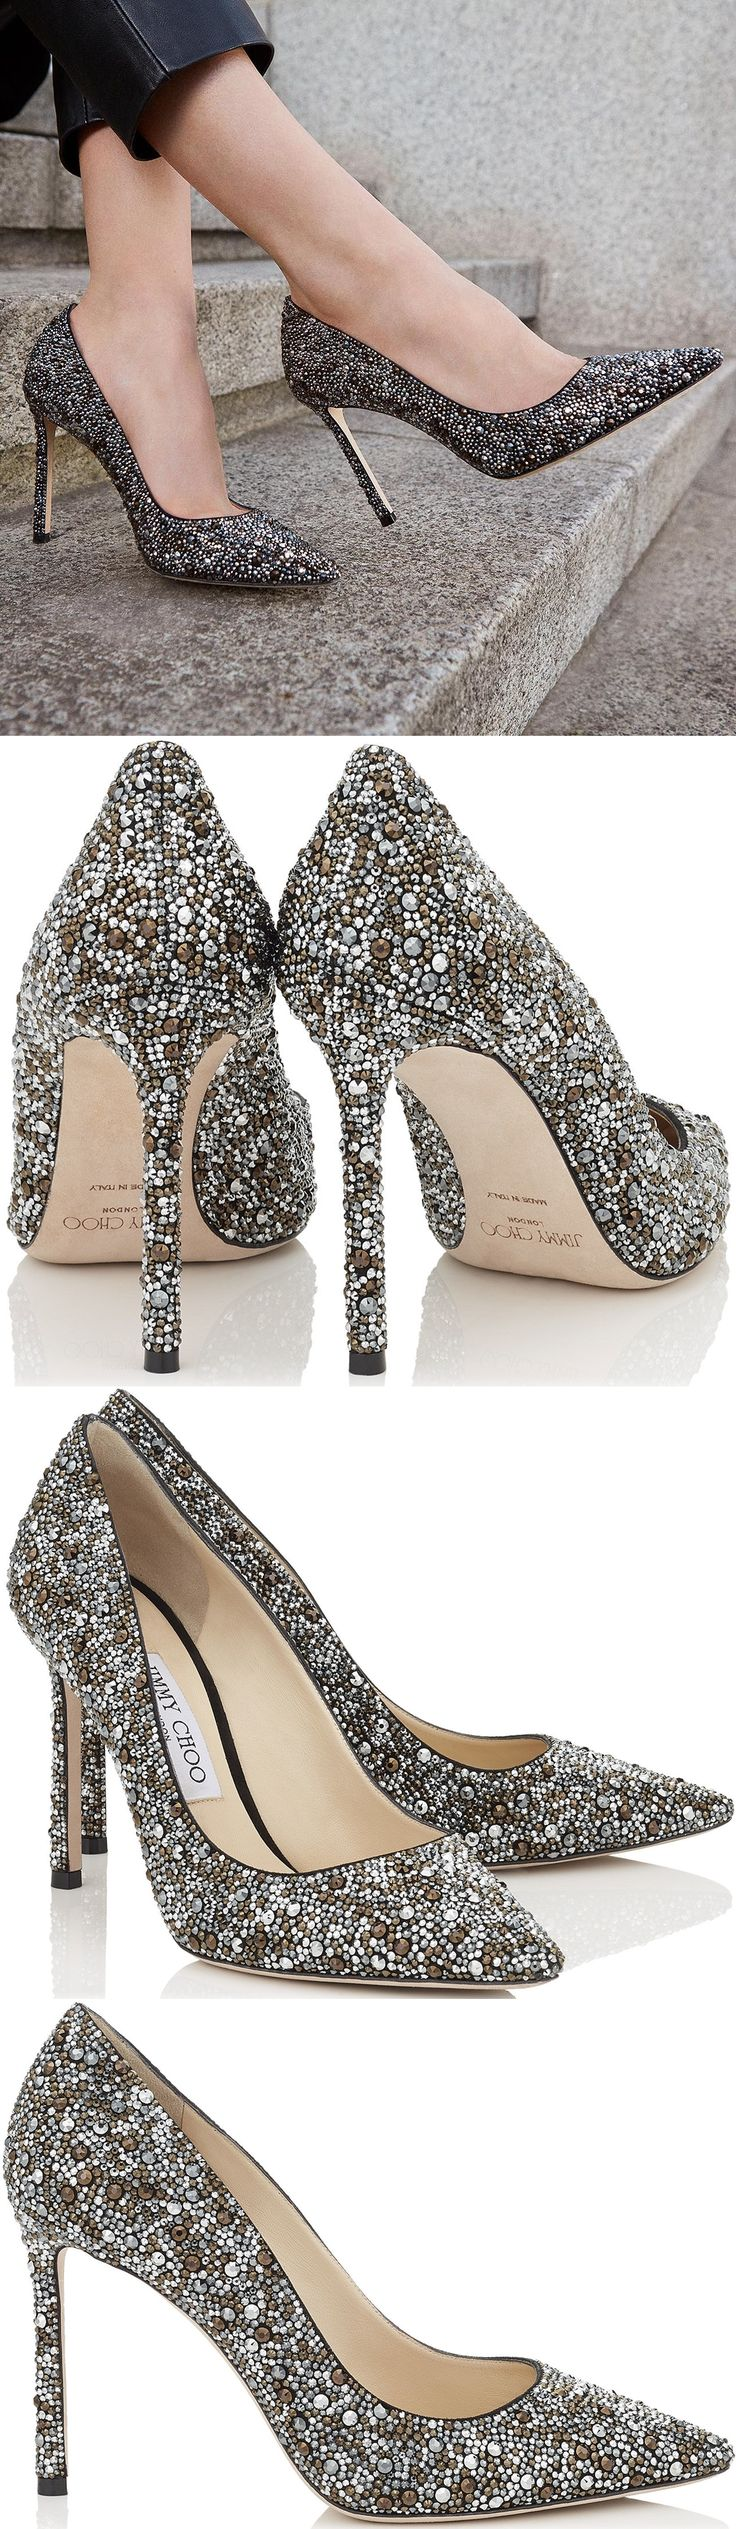 Jimmy Choo Romy Black Suede Pointy Toe Pumps with Crystal Hotfix